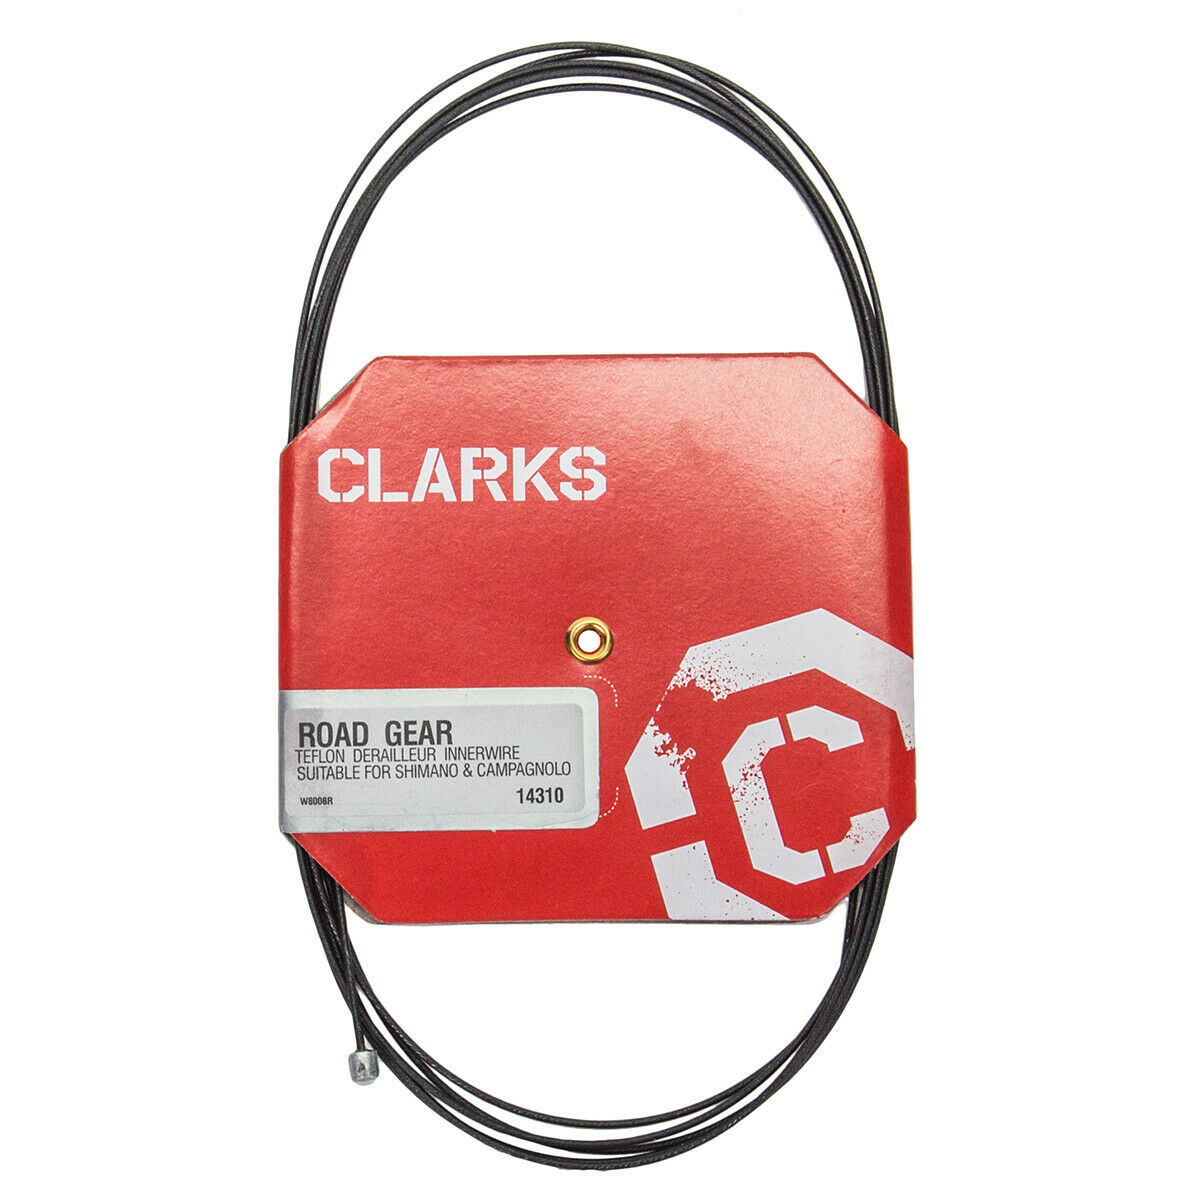 Clarks Bicycle Shifter Cable//Wire Pre-Lubed 1.1 x 3060mm